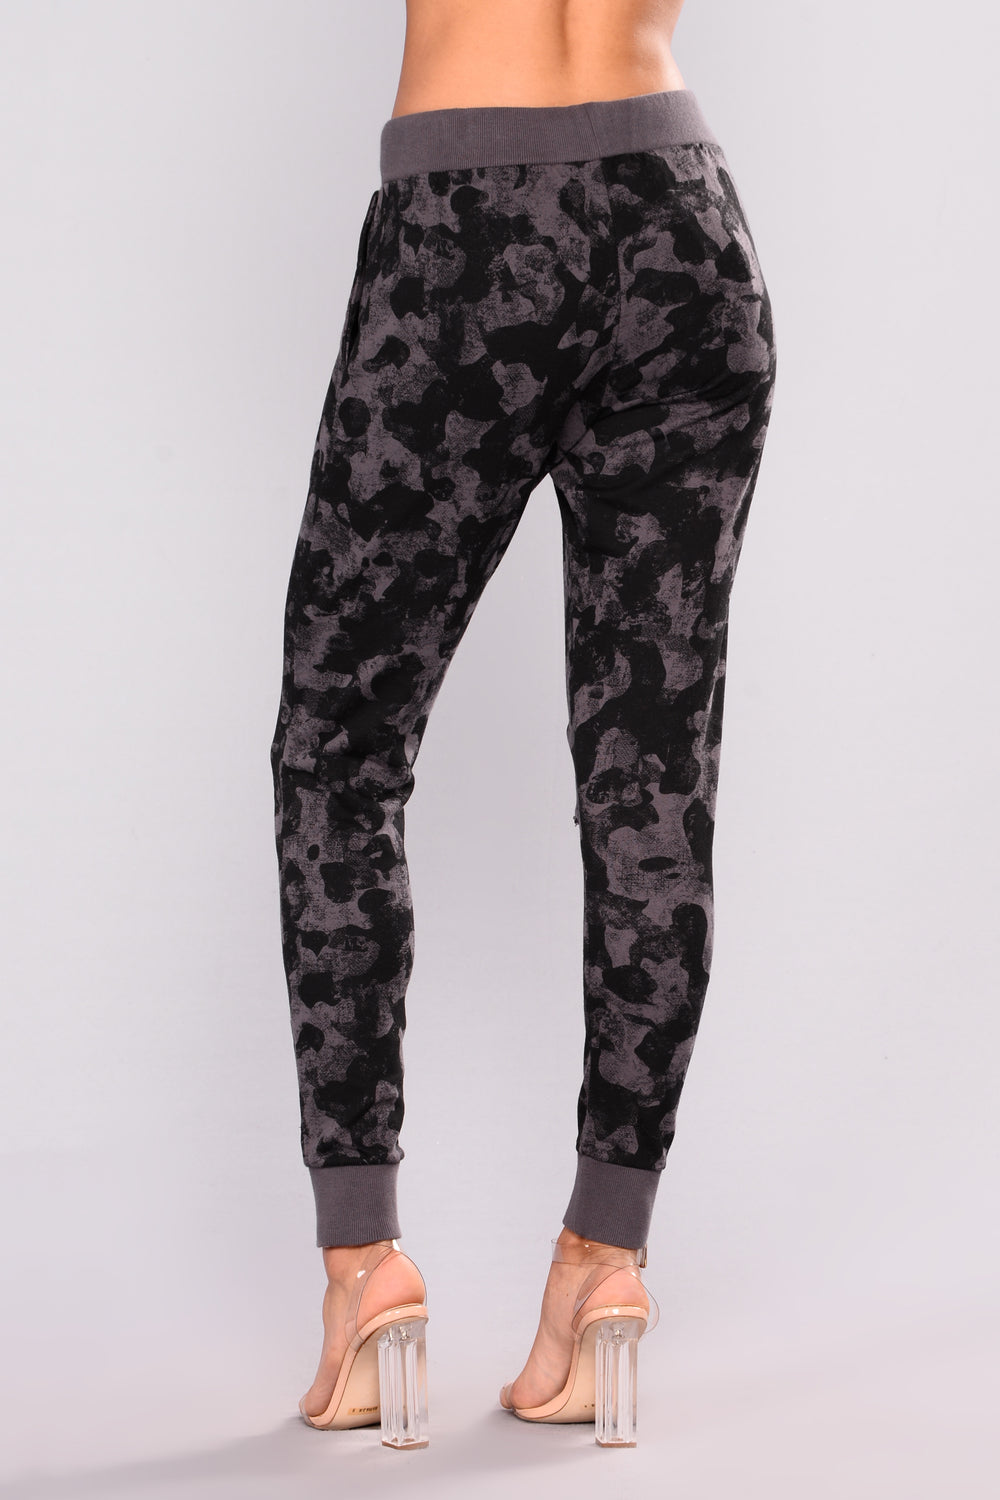 Damage Control Camo Pants - Charcoal